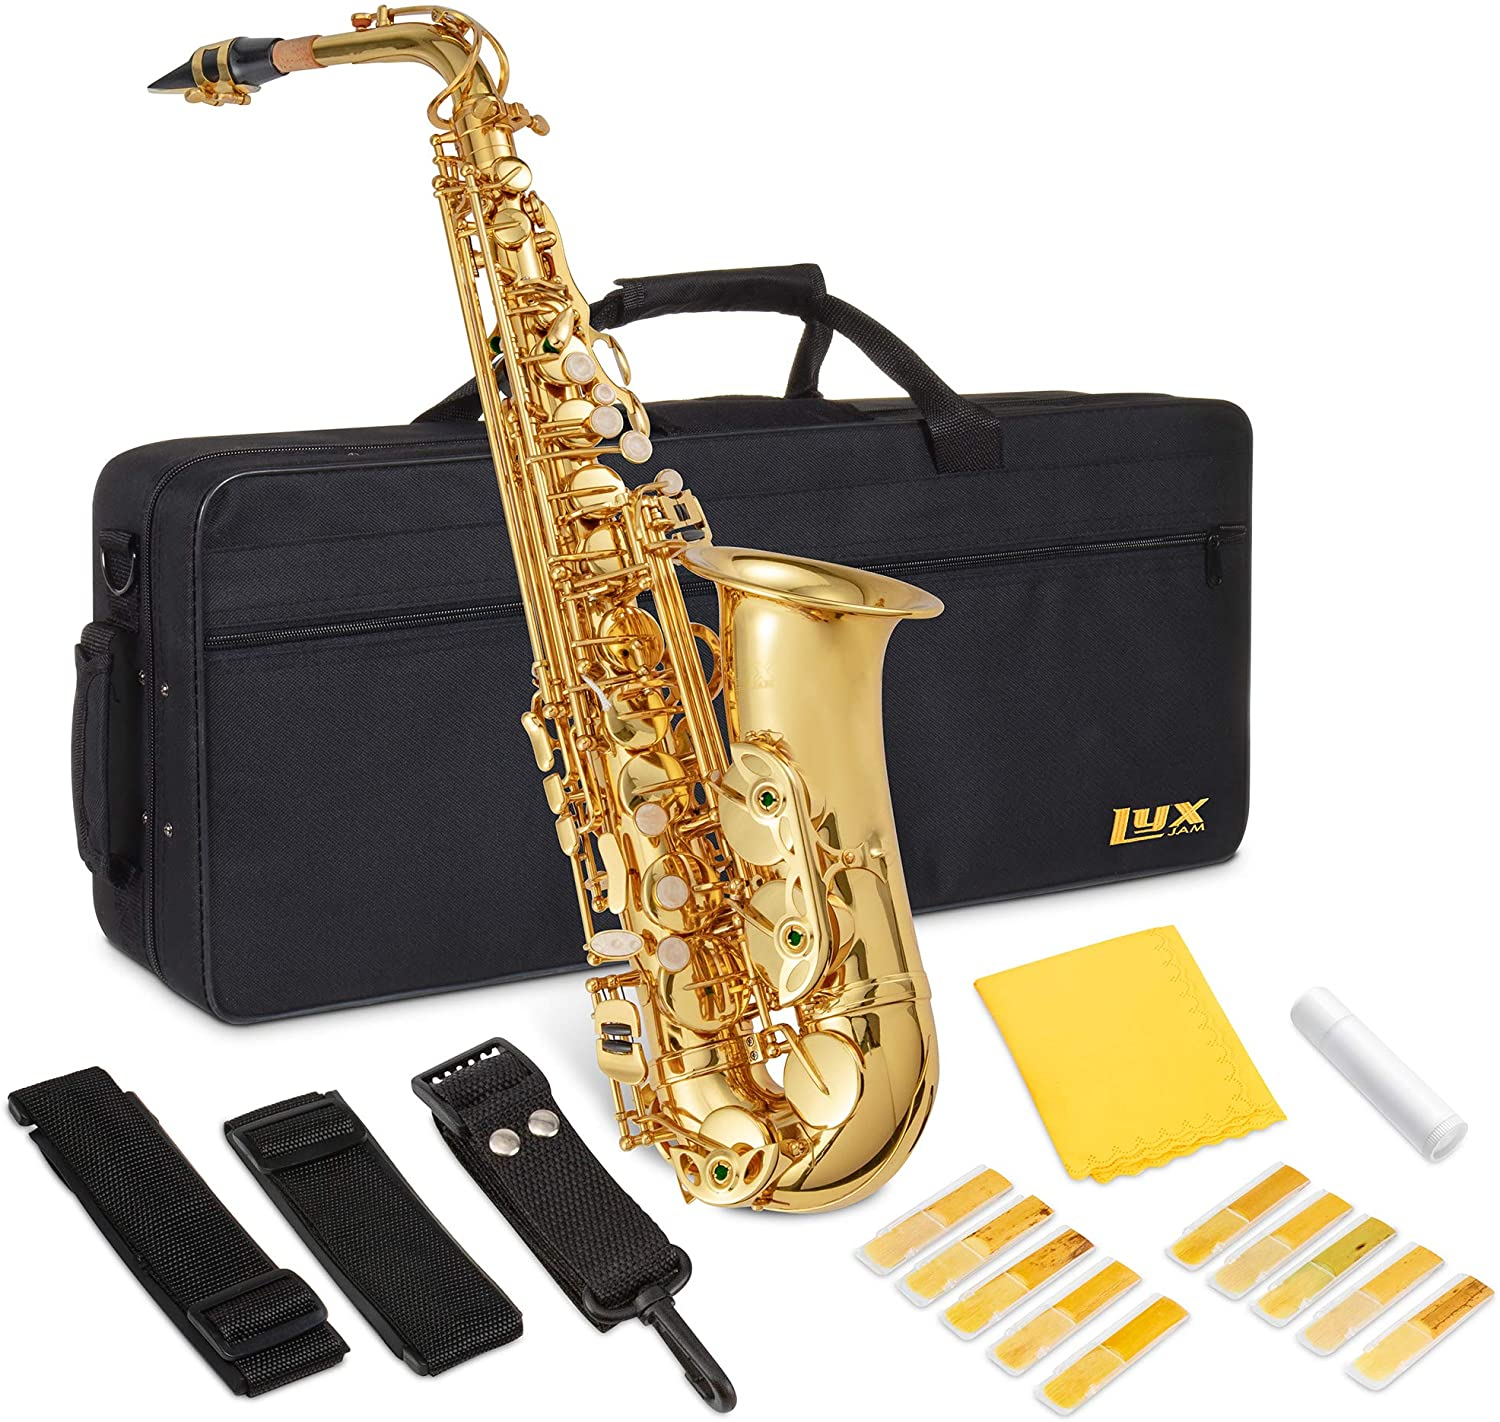 LyxJam Alto Saxophone E Flat Brass Sax Beginners Kit, Mouthpiece, Neck Strap, Cleaning Cloth Rod, Gloves, Hard Carrying Case With Removable Straps,10 Bonus Reeds - Gold Lacquer